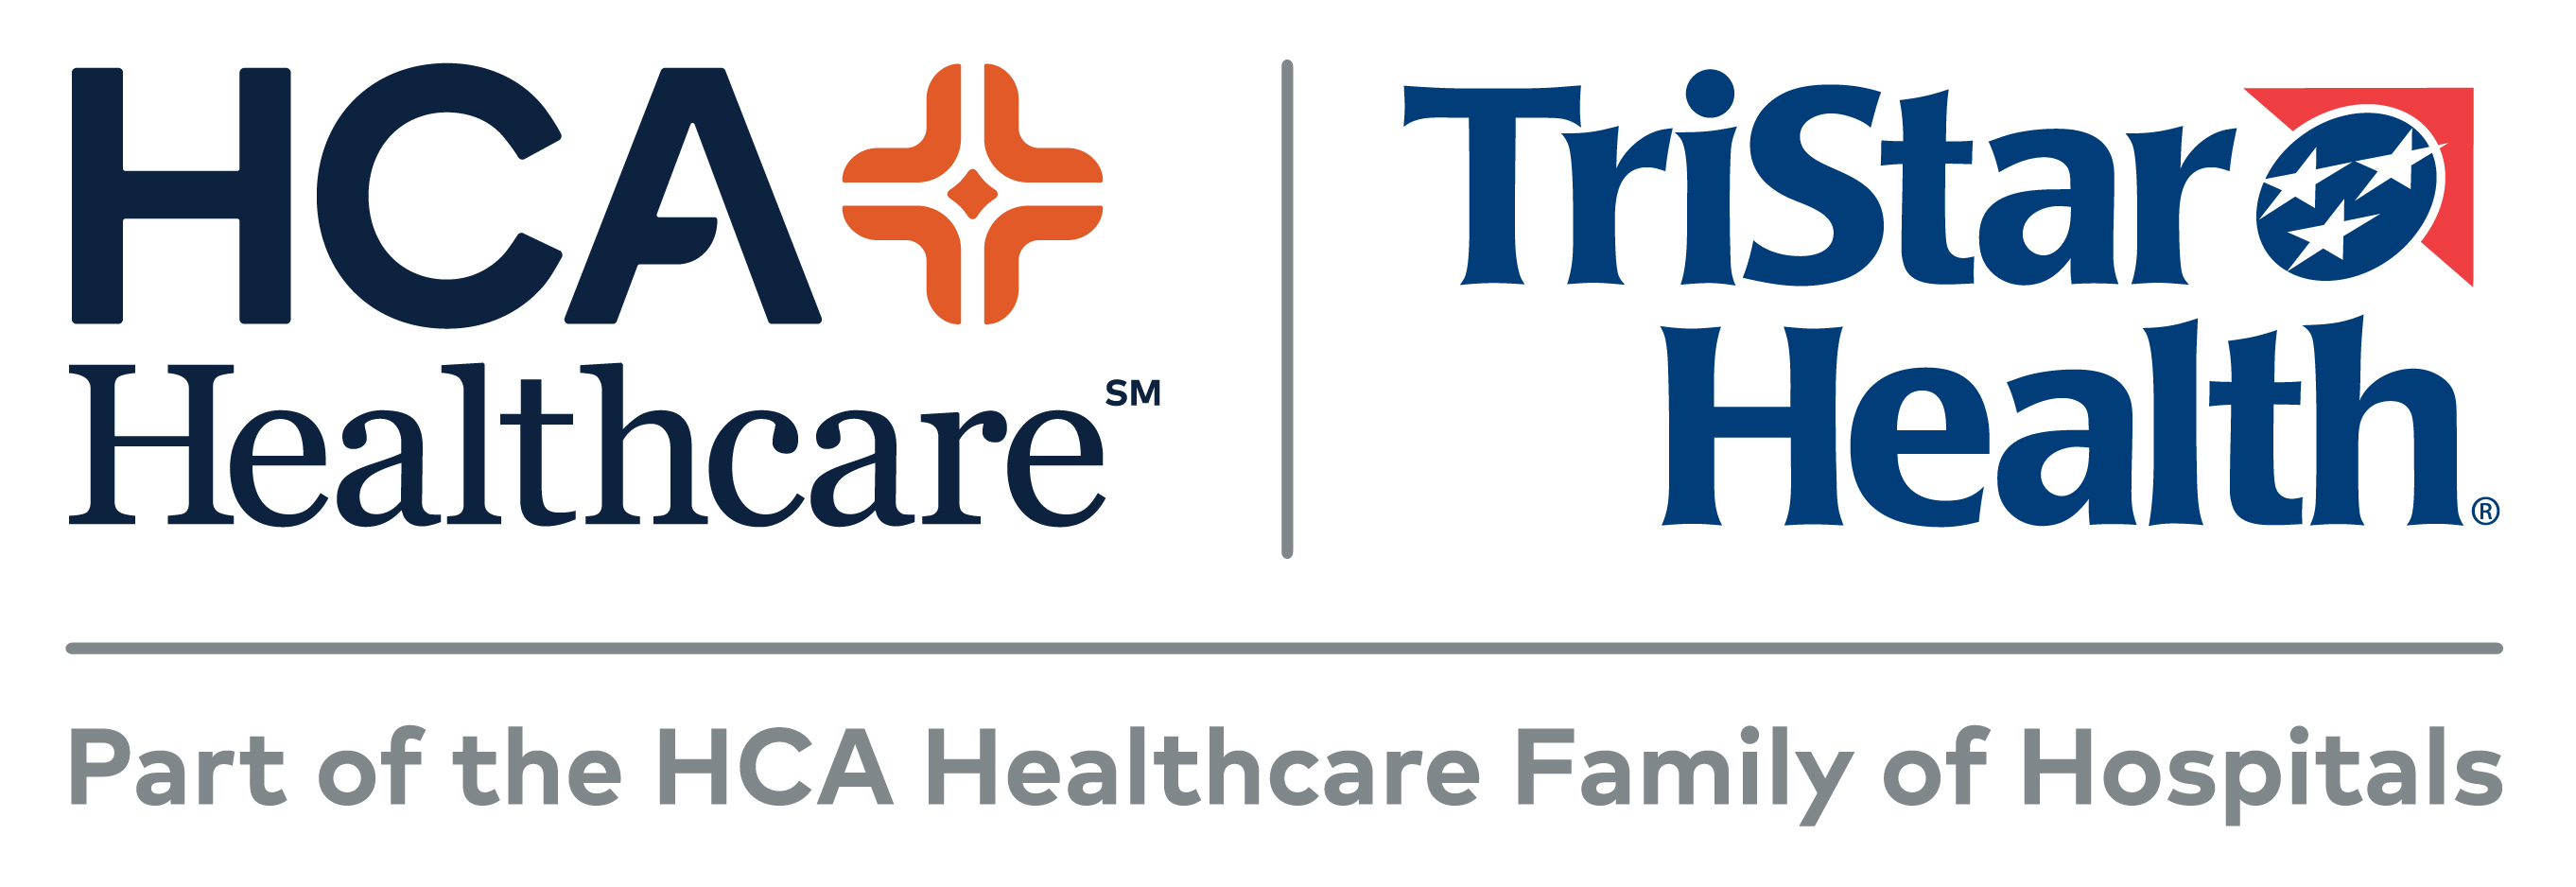 HCA Healthcare | Tristar Health